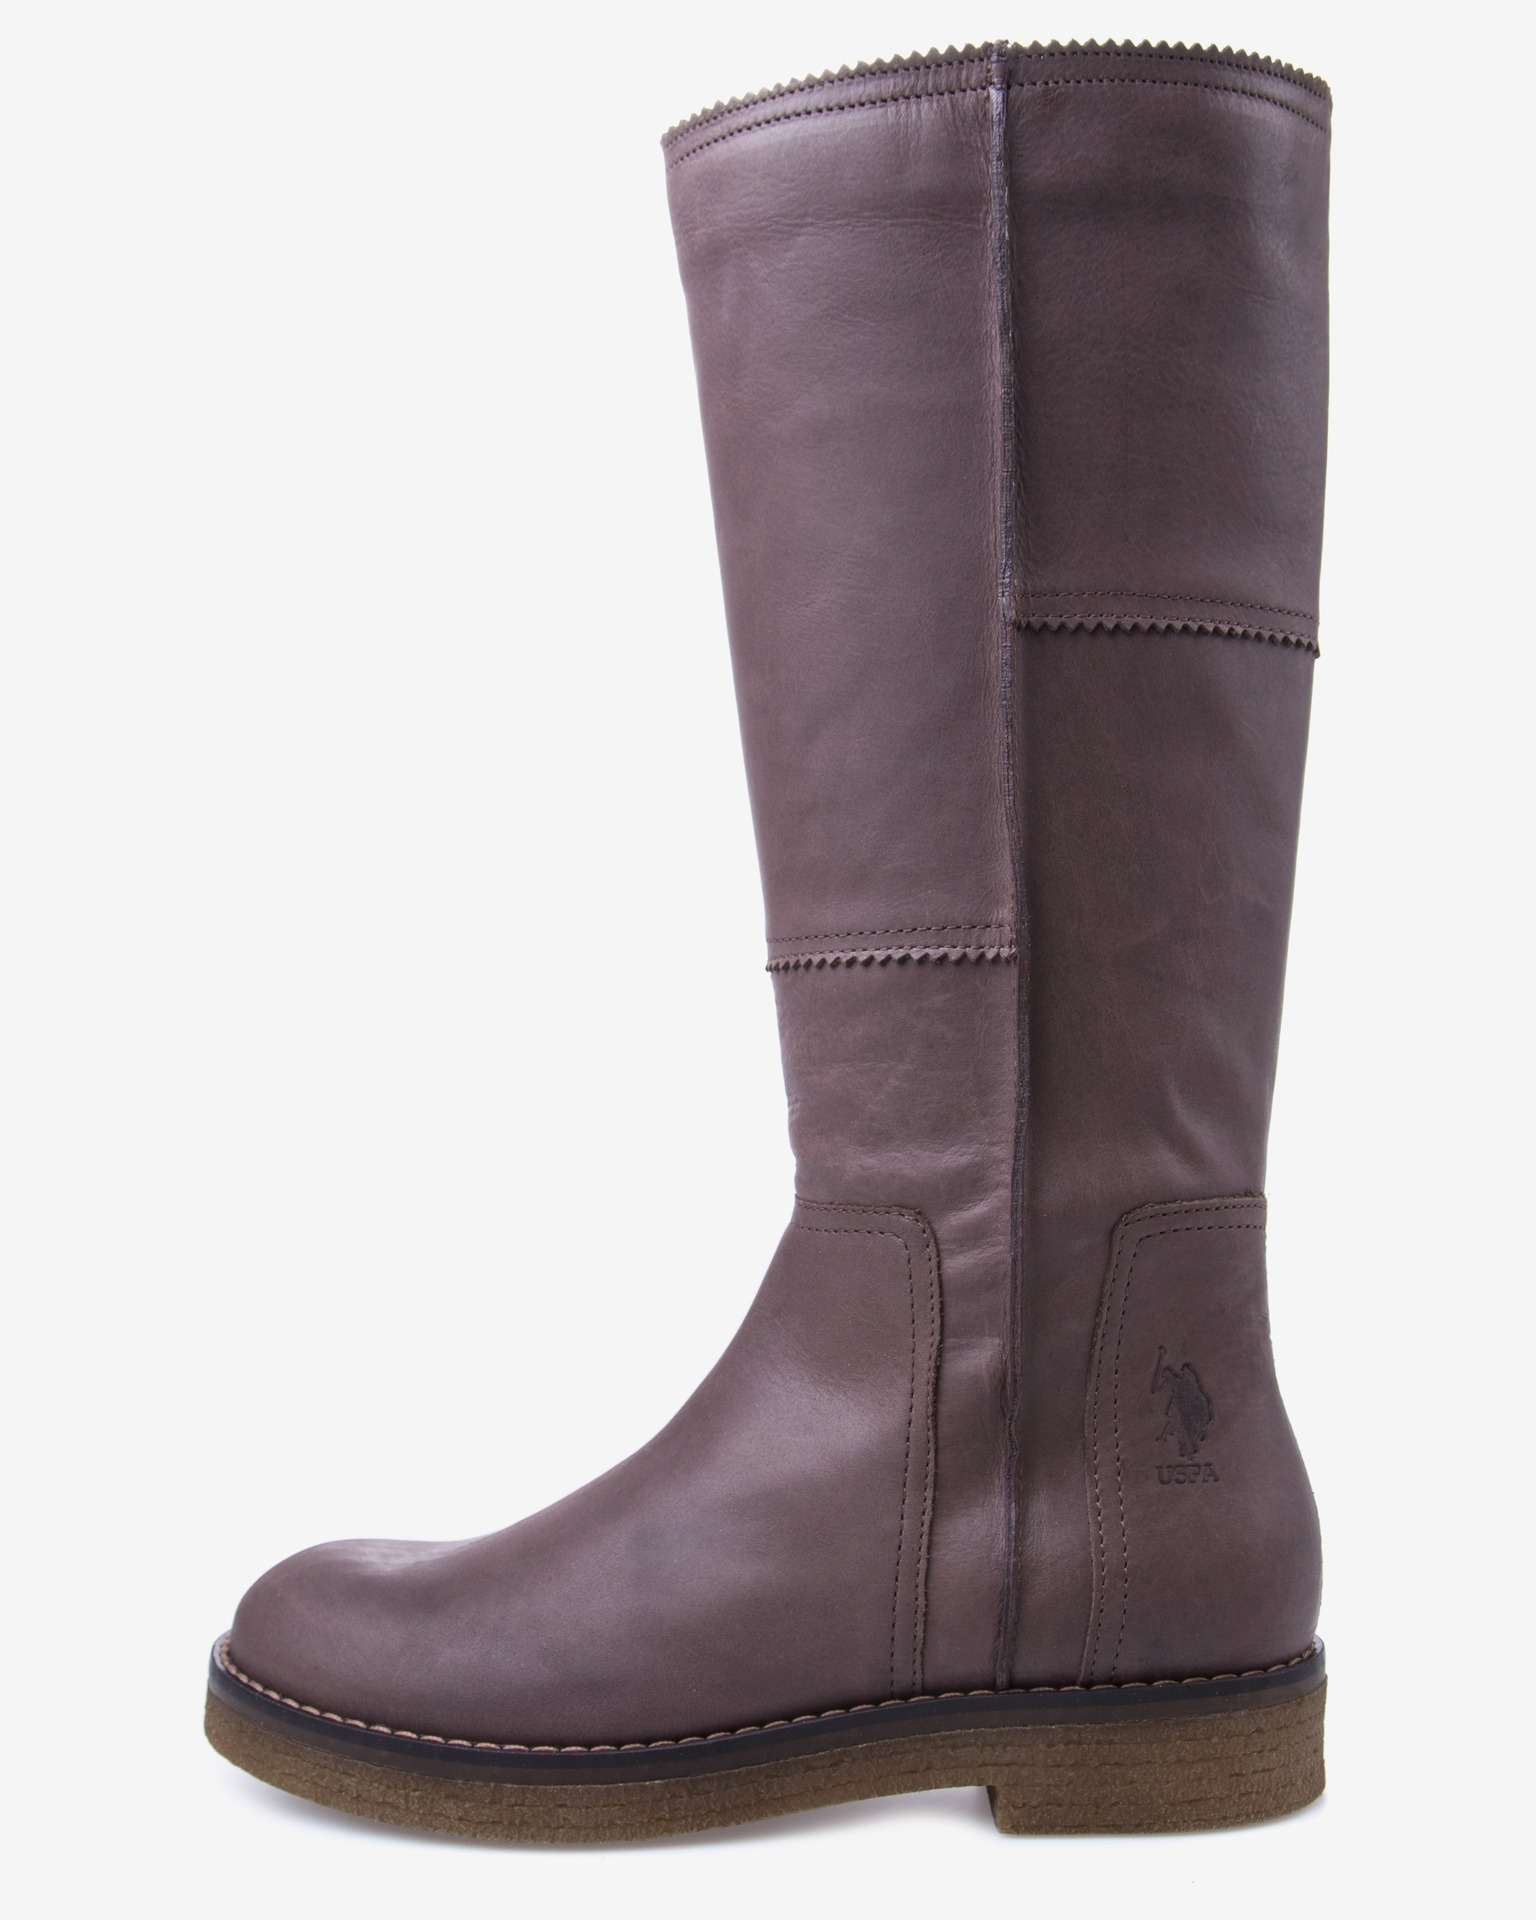 U.S. Polo Assn Mabelle Tall boots